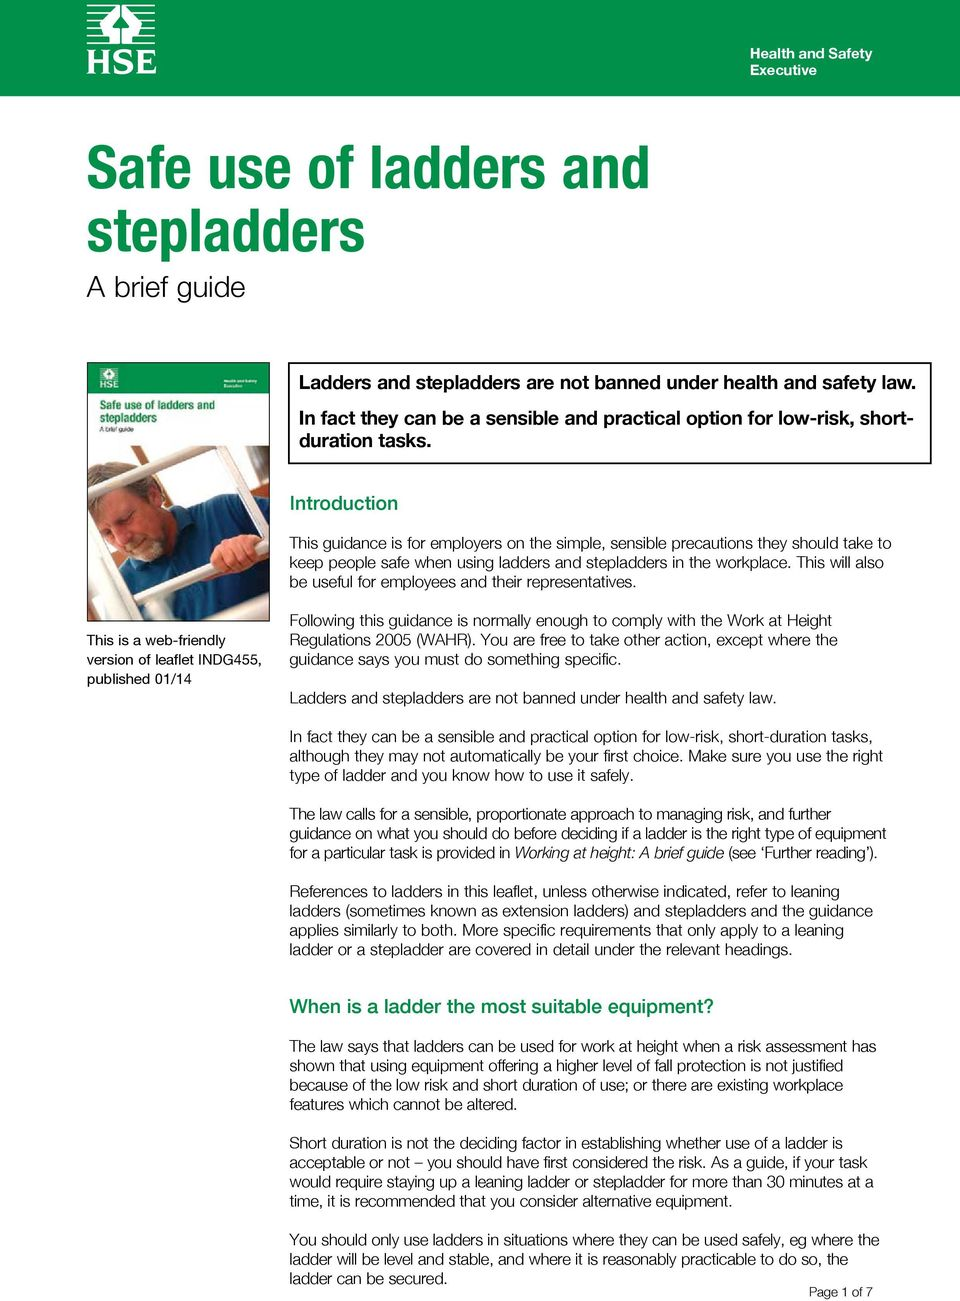 Introduction This guidance is for employers on the simple, sensible precautions they should take to keep people safe when using ladders and stepladders in the workplace.